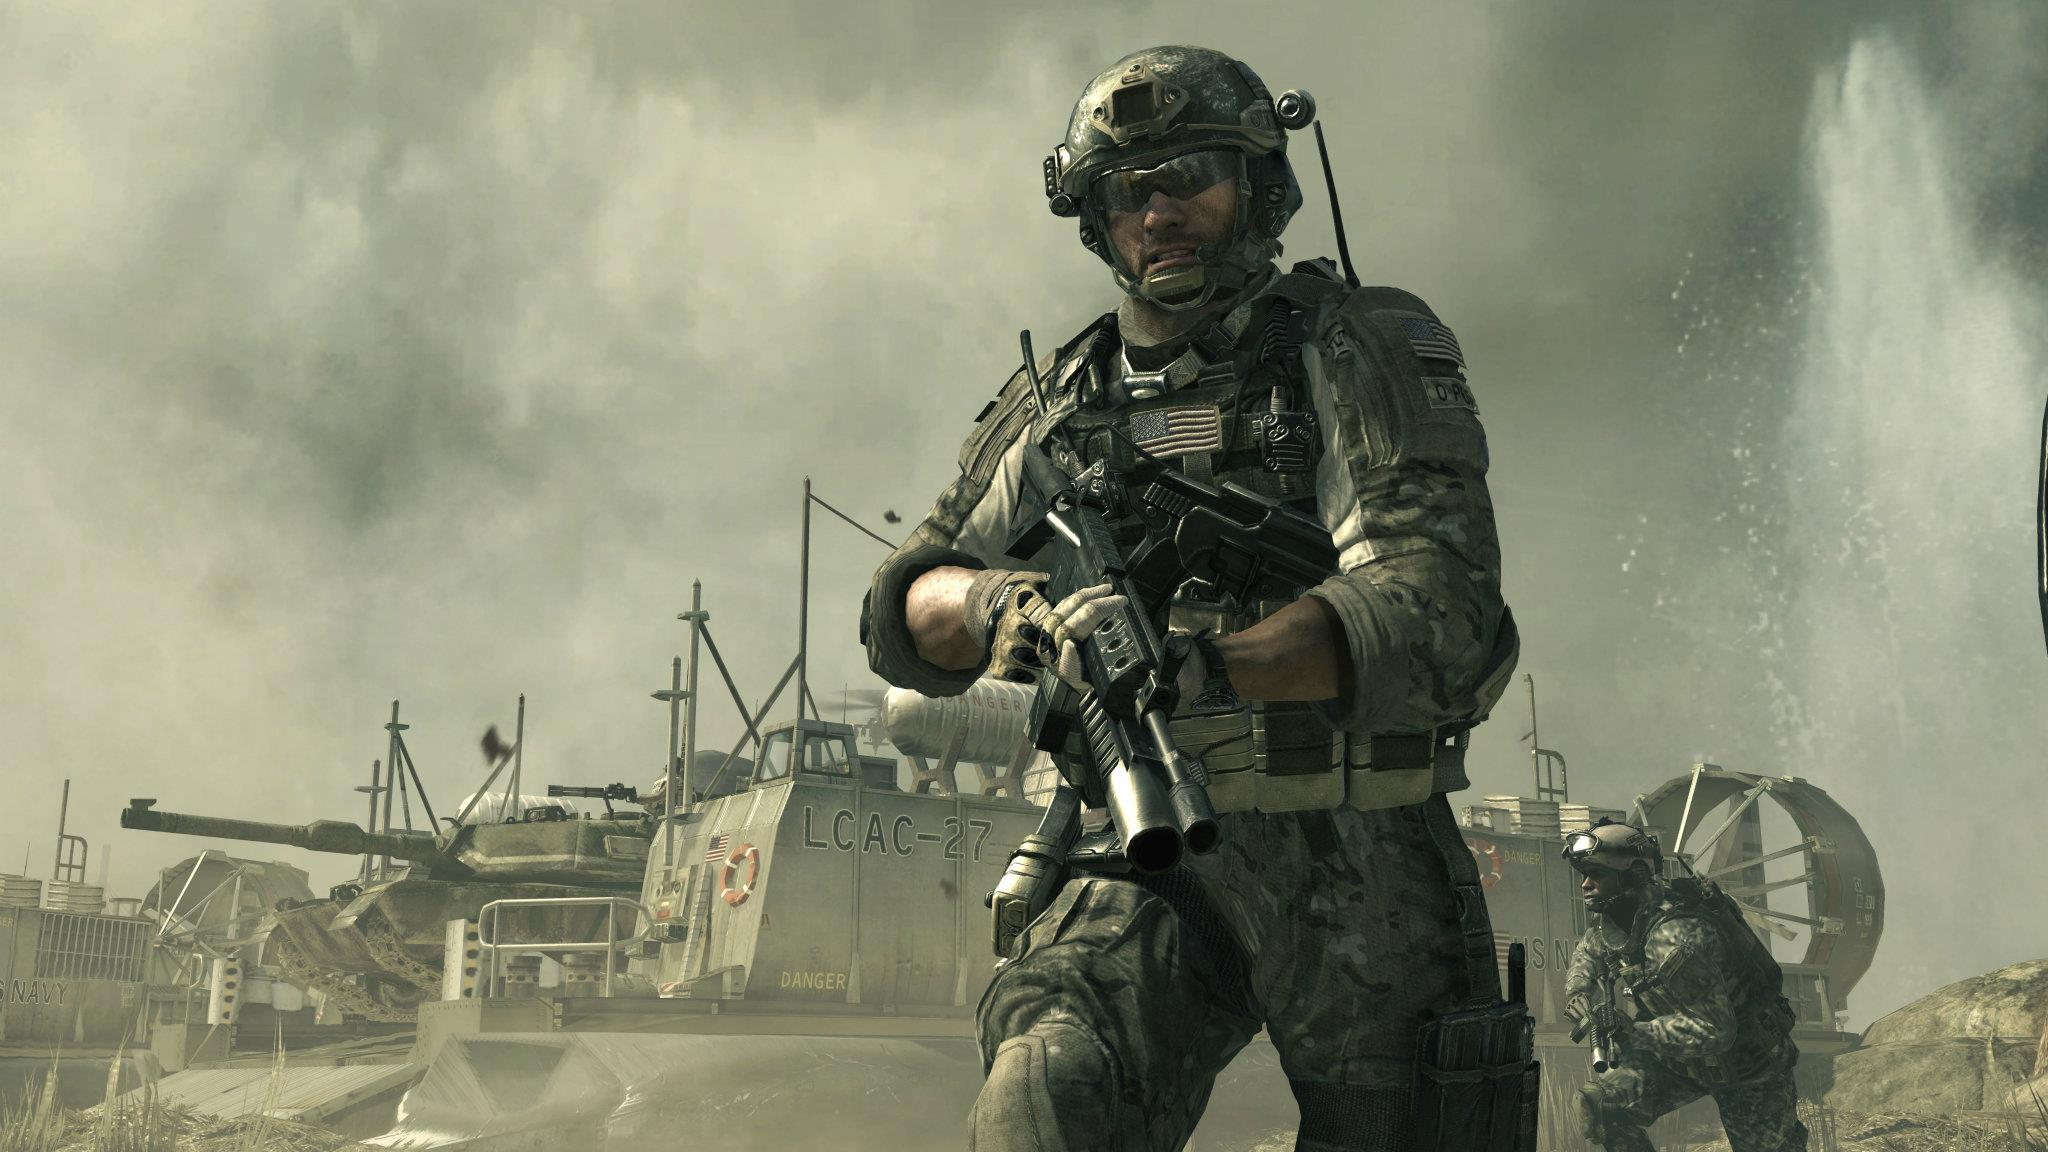 Cod Modern Warfare 3 Images Sandman Hd Wallpaper And